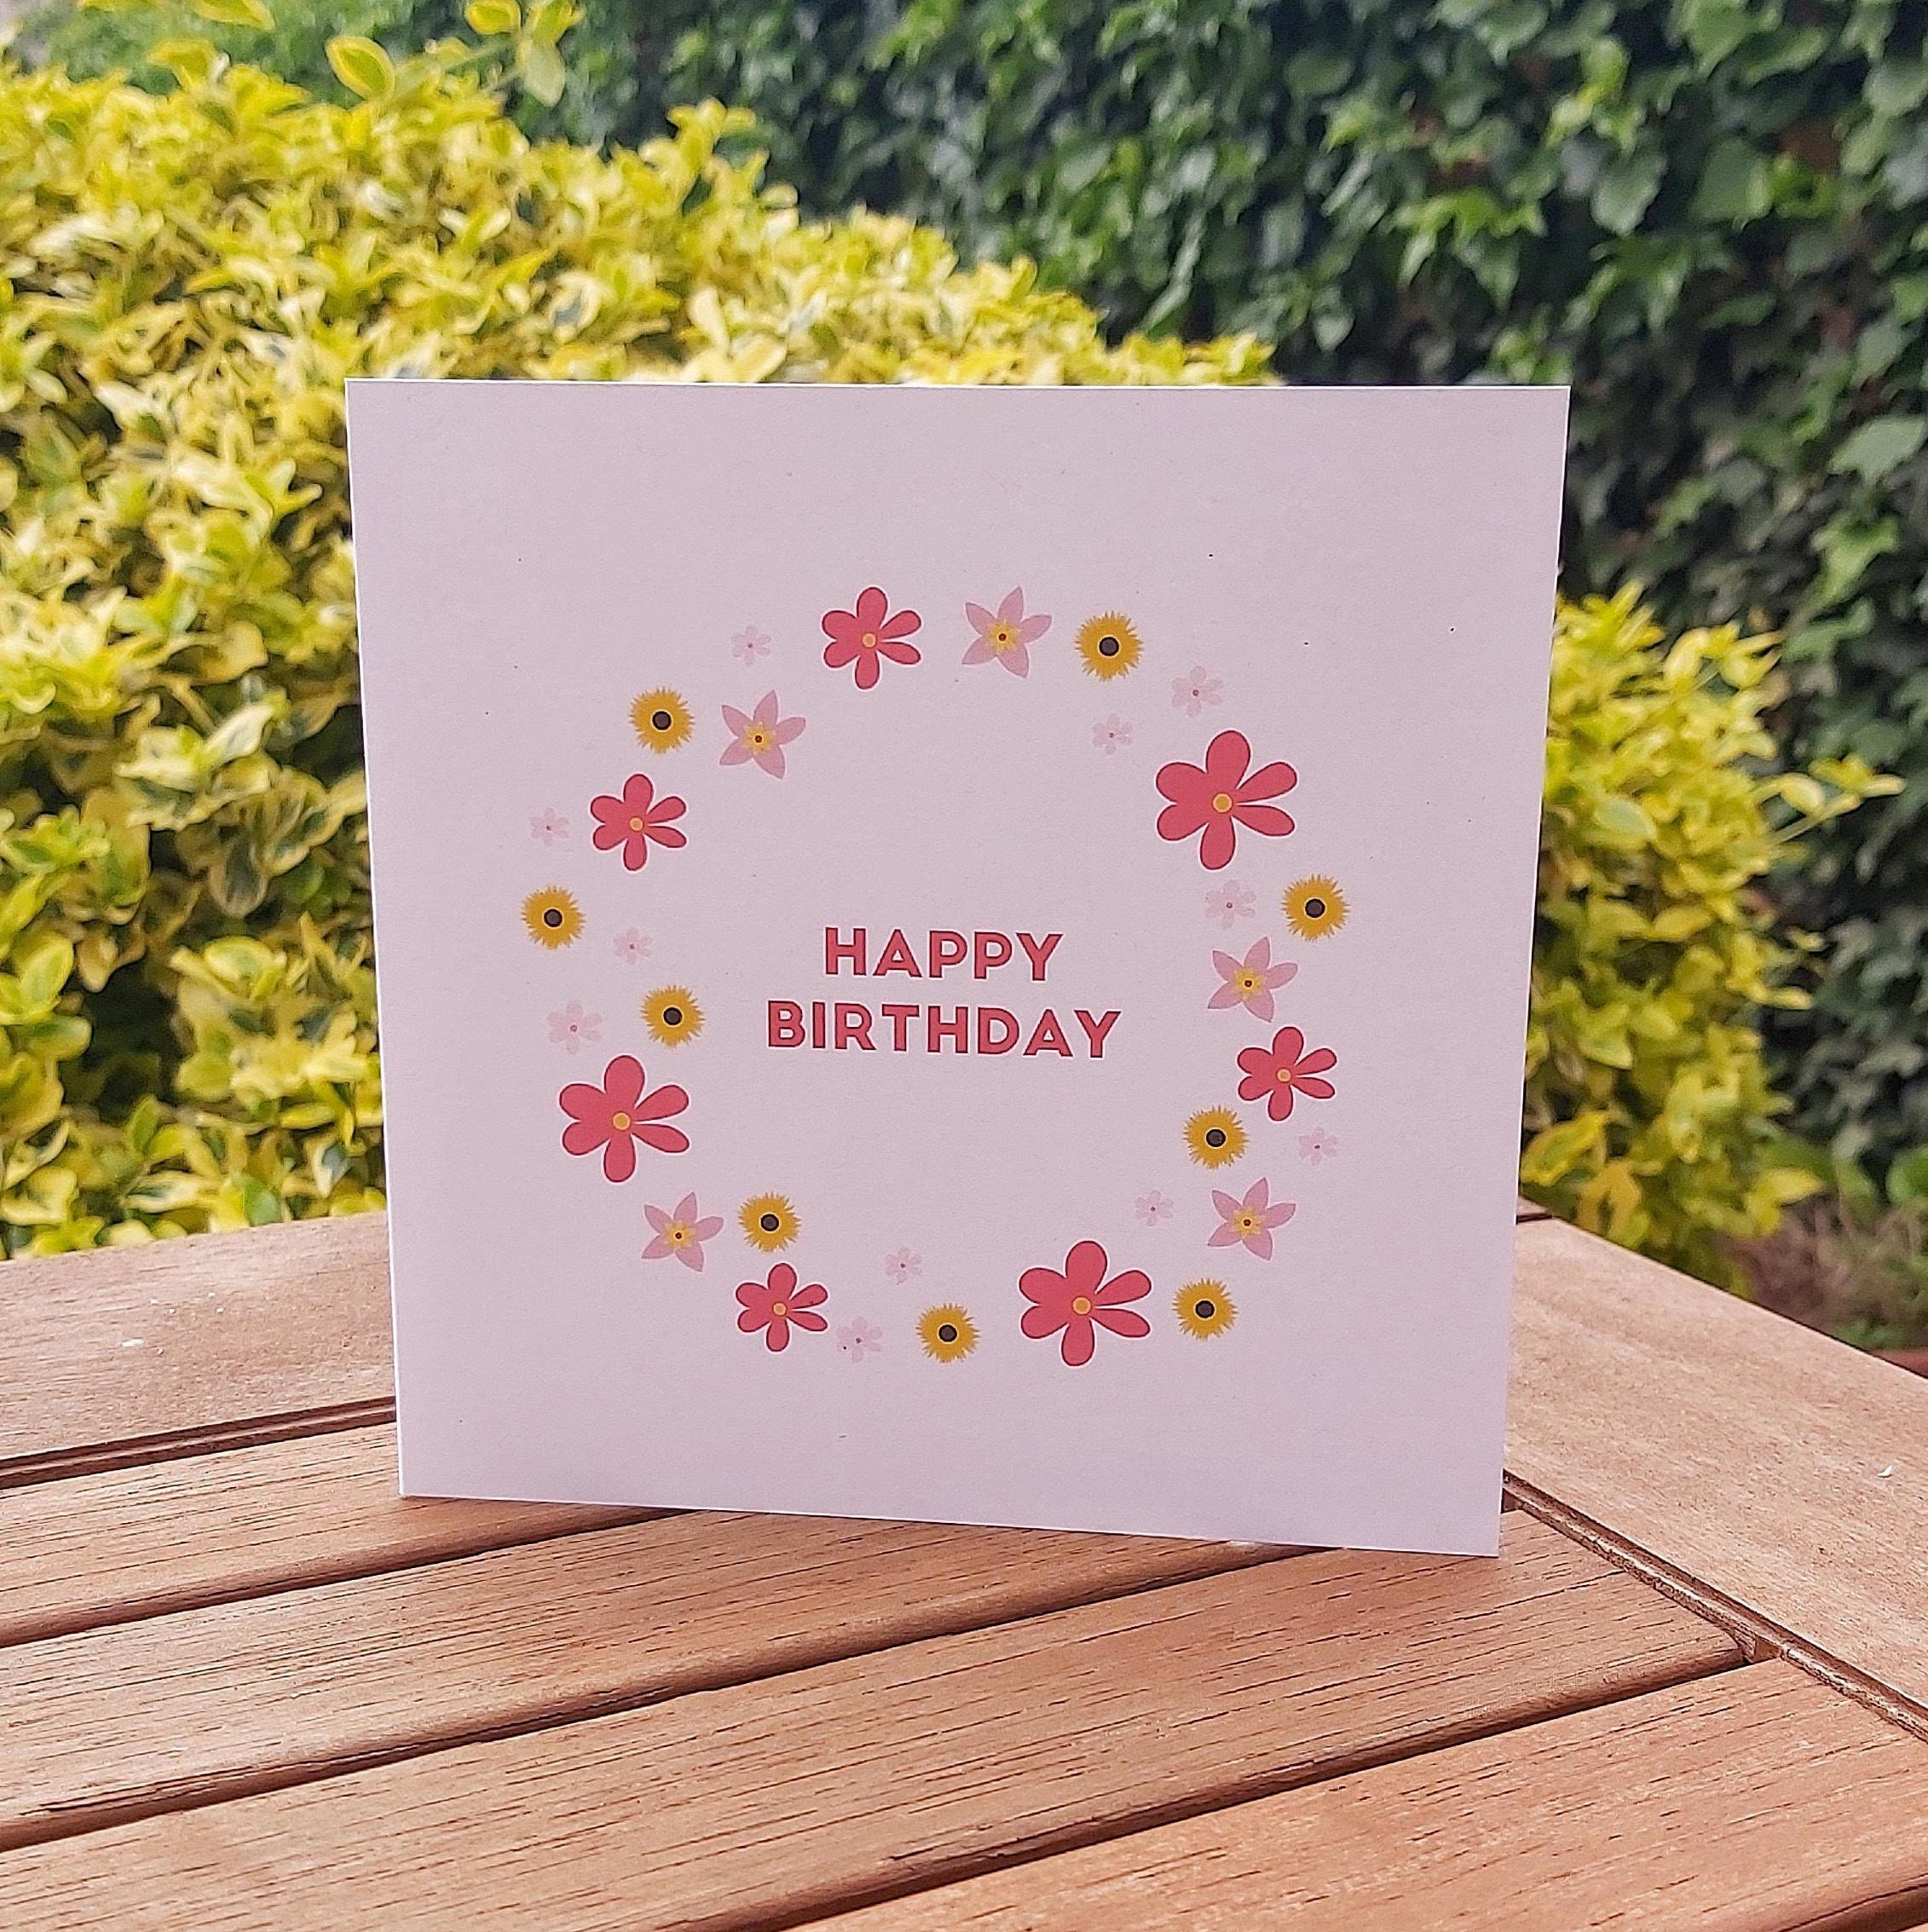 Photograph of a square light pink card with a circle of bright pink and yellow flowers, and the words 'Happy Birthday' in the middle. The card is standing on a wooden table in the sunshine